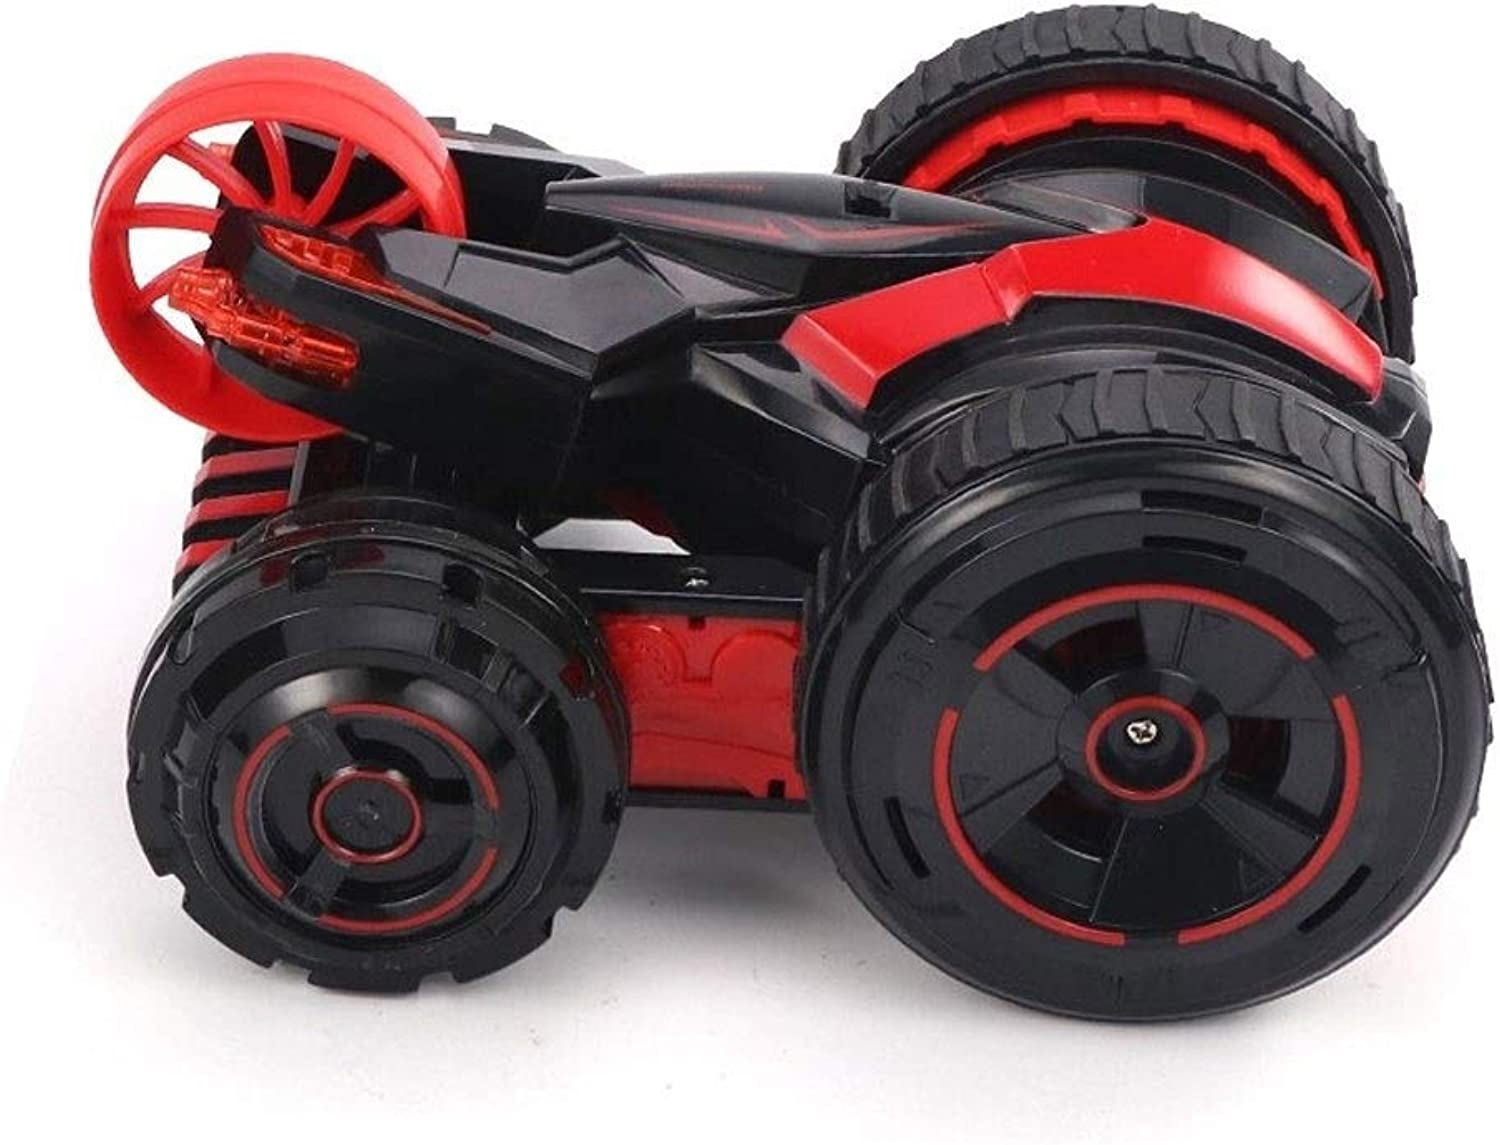 Ycco New Unique Toys Radio Controlled Remote Control Car Flip Wheelie RC 4WD Double Sided 360° Spins and Flips with LED Lights Driving Cars Toys for Kids on 2, 3, 4 or 5 Wheels – Indoors Outdoors –